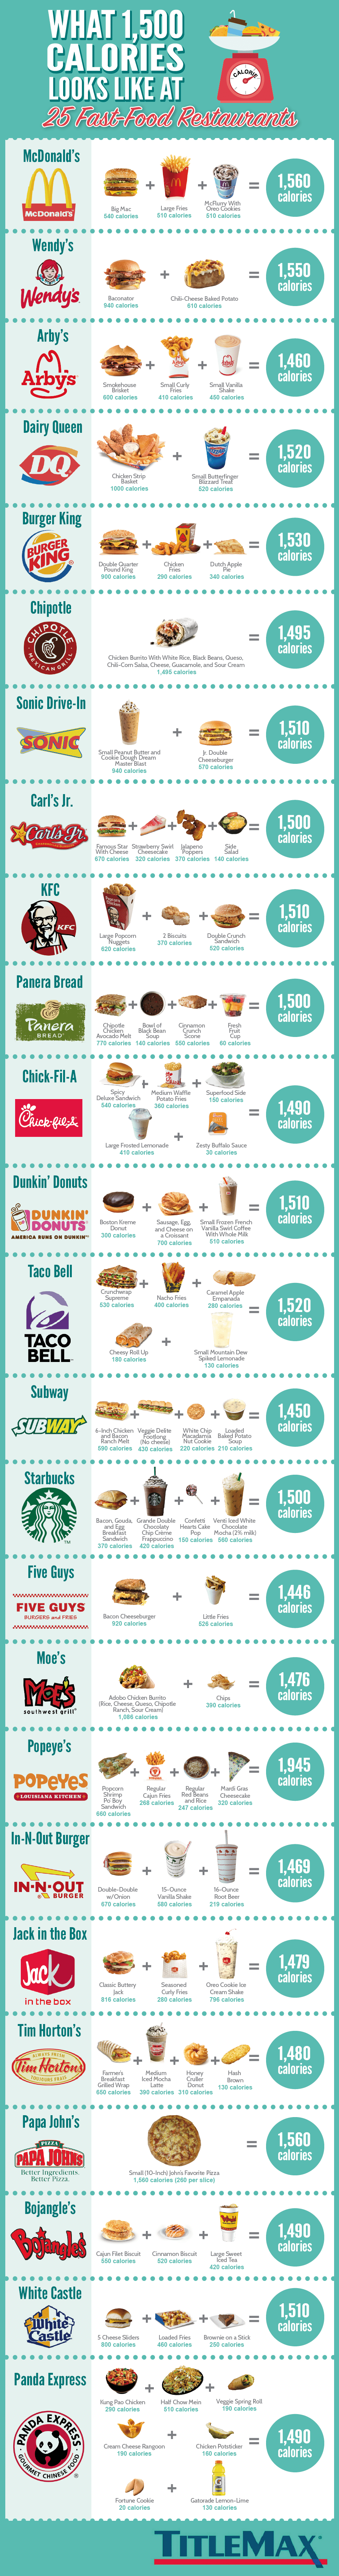 Illustration of 1500 Calorie meal combinations at 25 different fast food restaurants